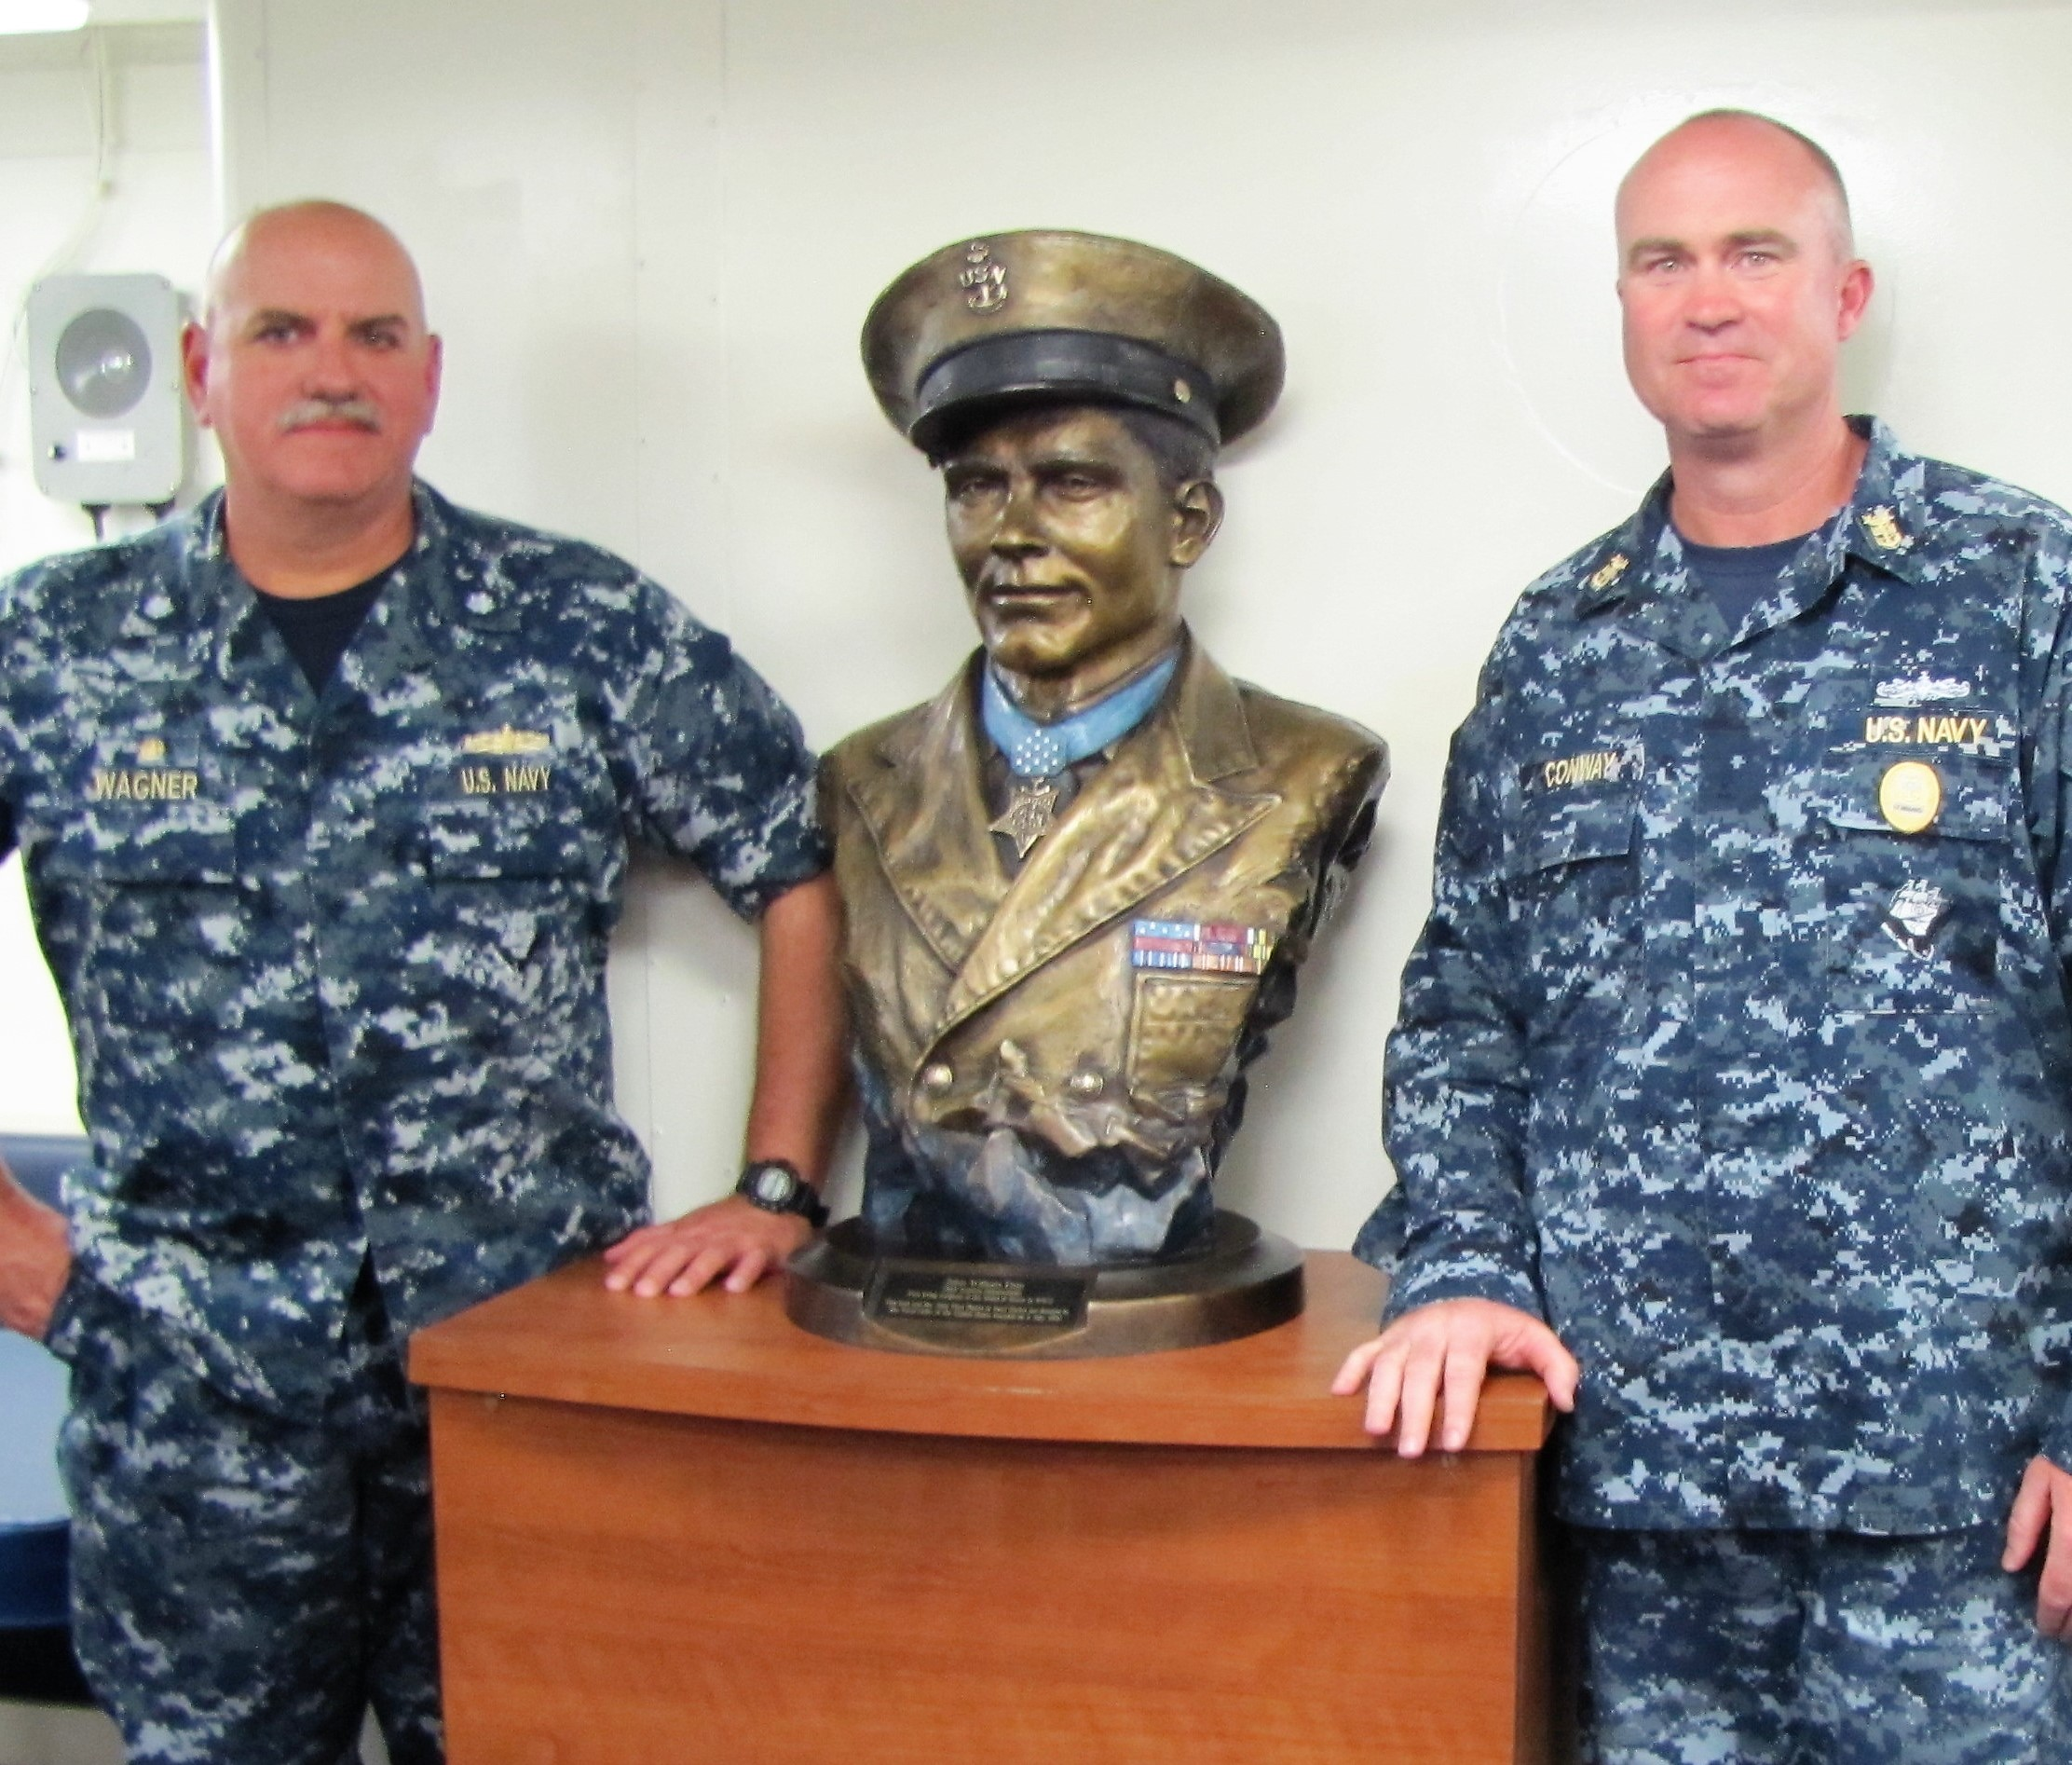 CO CDR Michael Wagner, left of Bust;Command Master Chief Thomas Conway, right of bust